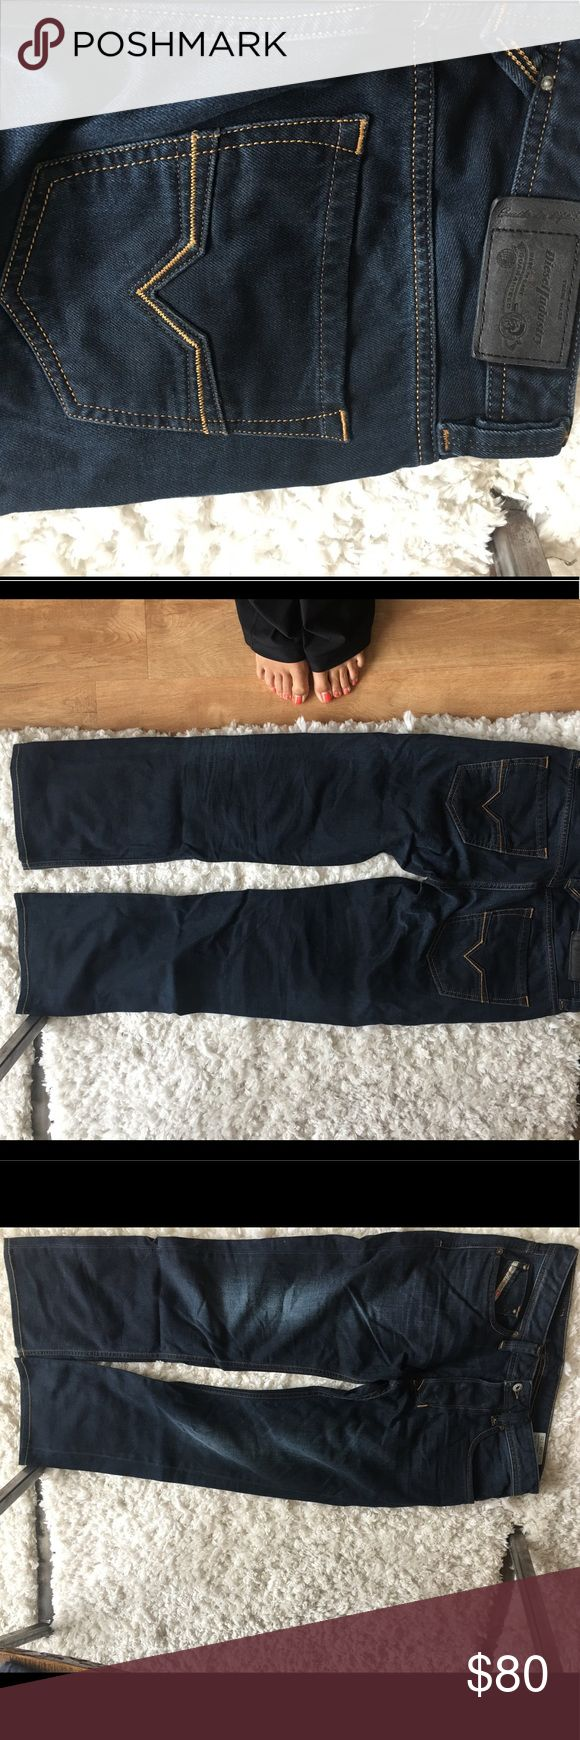 """Men's Larkee Diesel Jeans- brand new Diesel straight leg jeans. Bought for my husband- Perfect condition, worn once. Dark wash. 32"""" inseam. Size 30. Diesel Jeans Straight"""